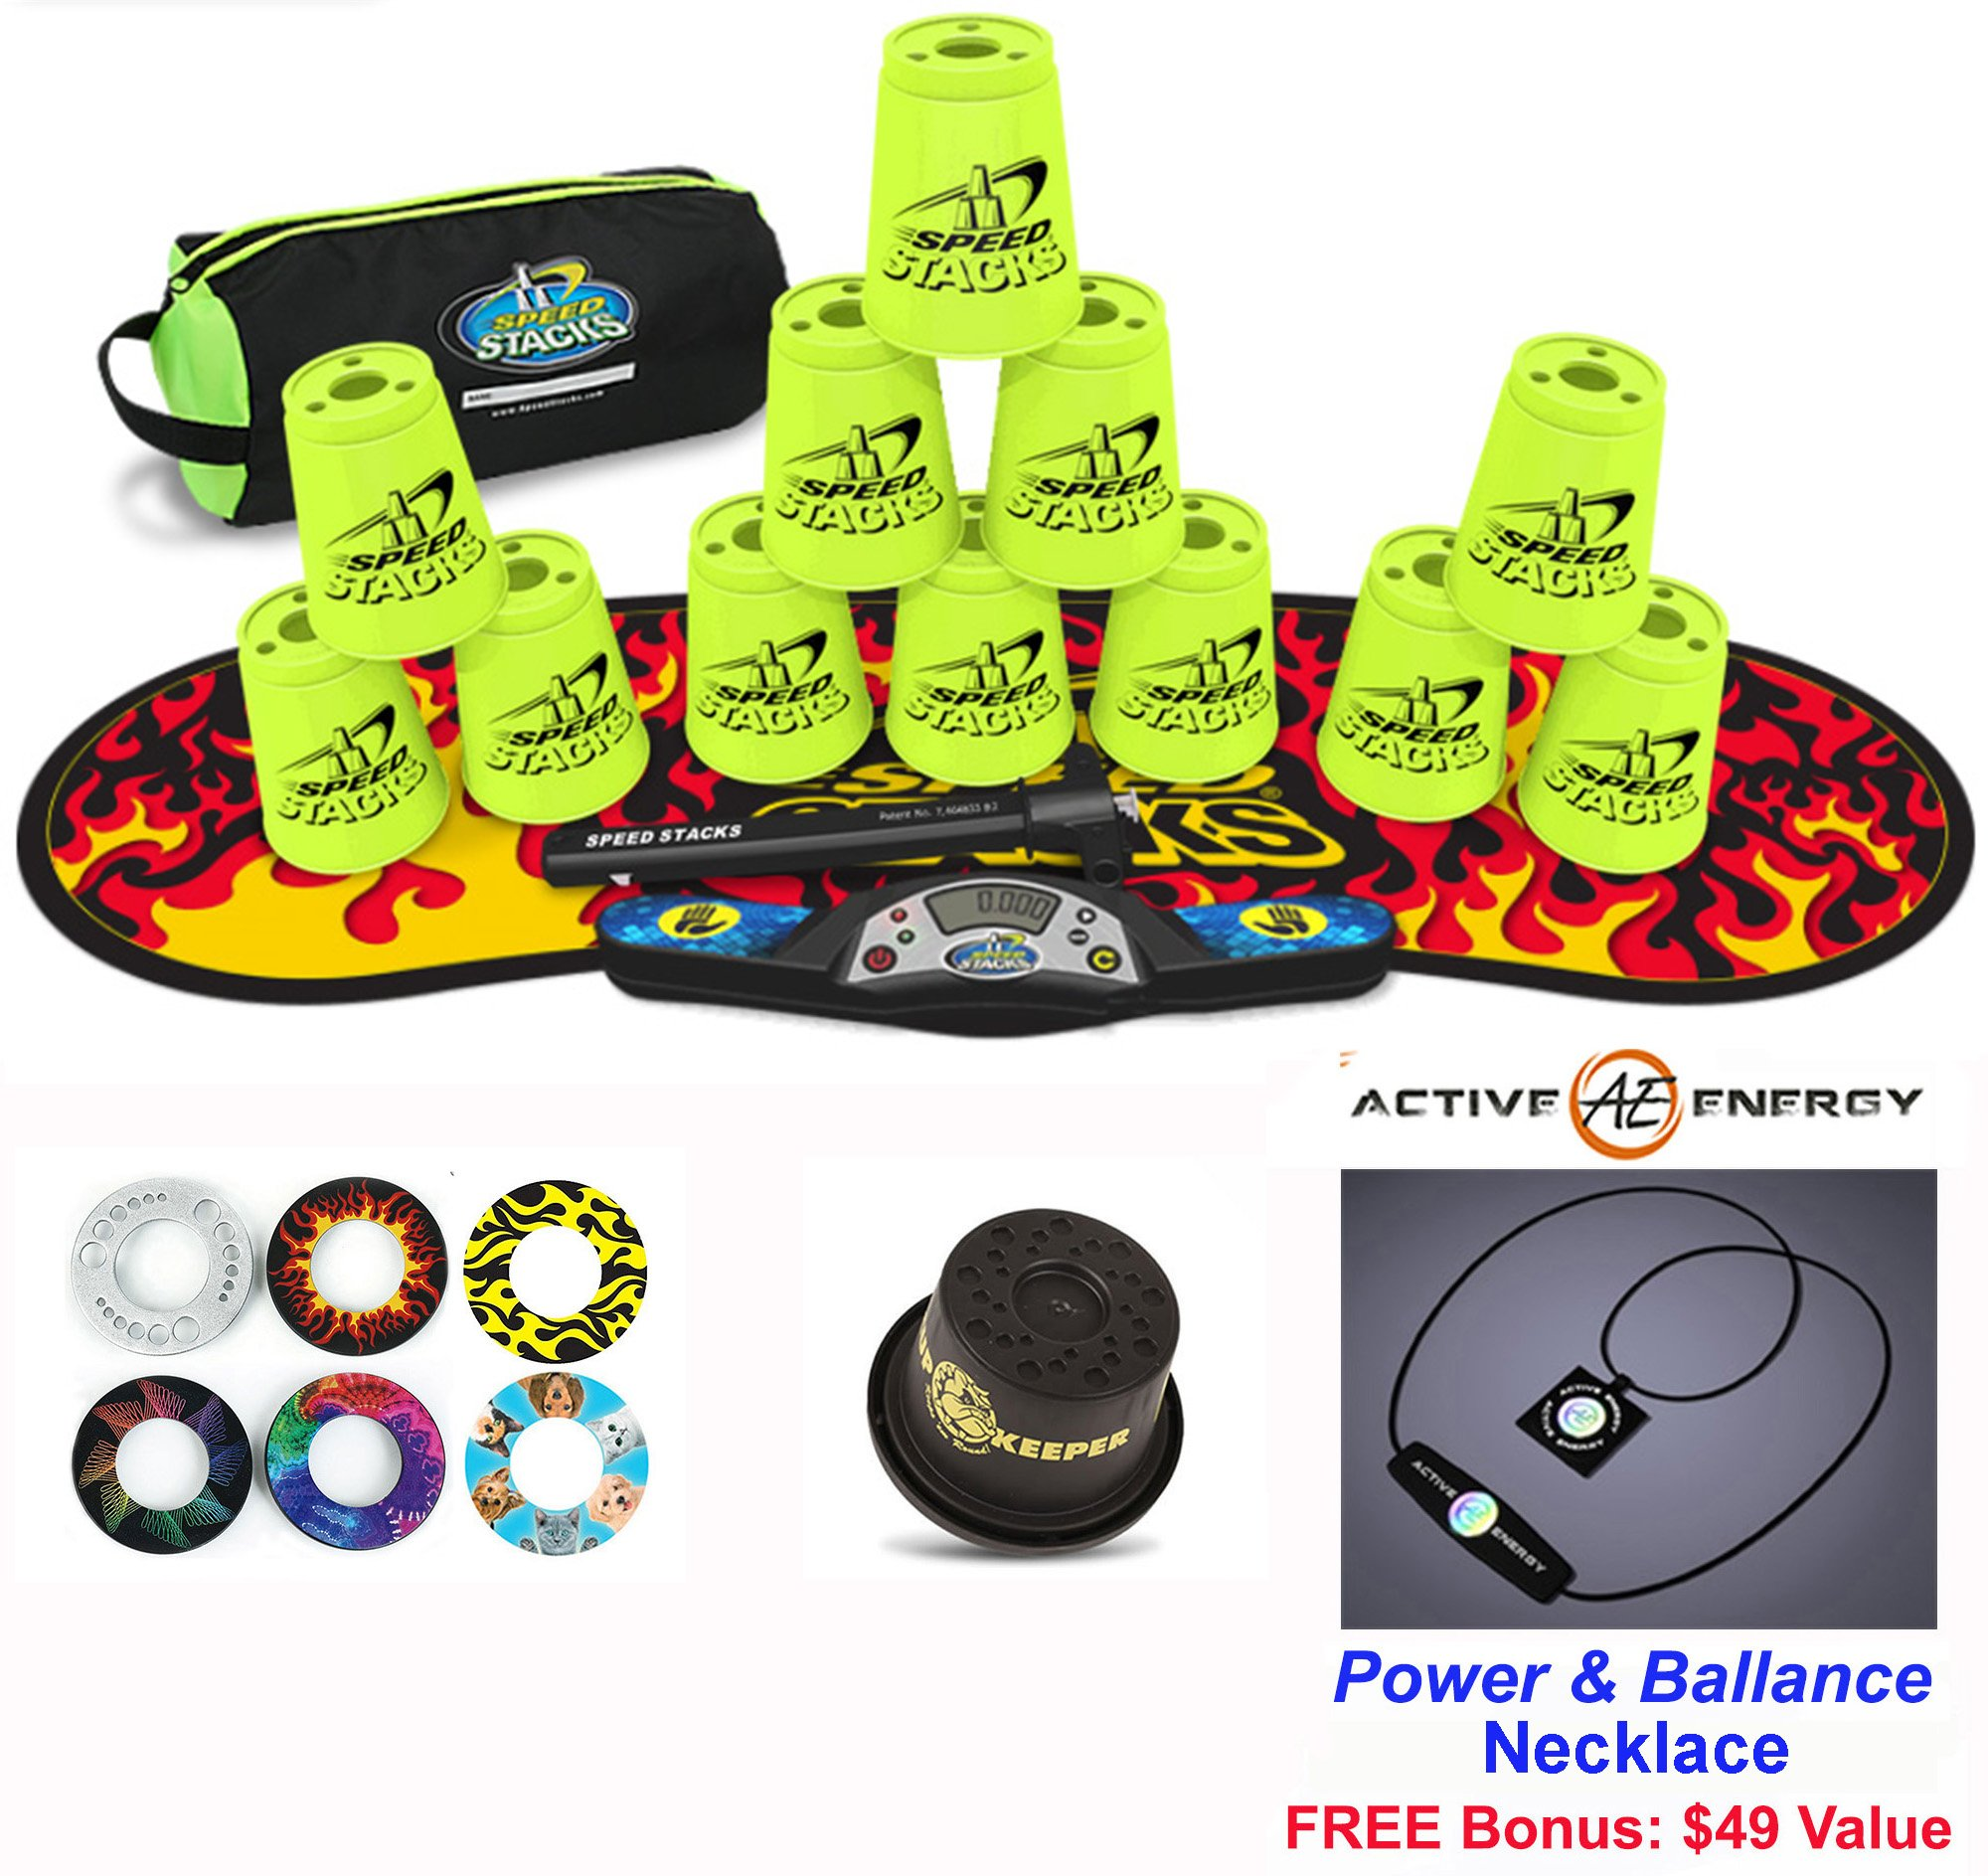 Speed Stacks Combo Set 'The Works'': 12 NEON YELLOW 4'' Cups, Black Flame Gen 3 Mat, G4 Pro Timer, Cup Keeper, Stem, Gear Bag + Active Energy Necklace